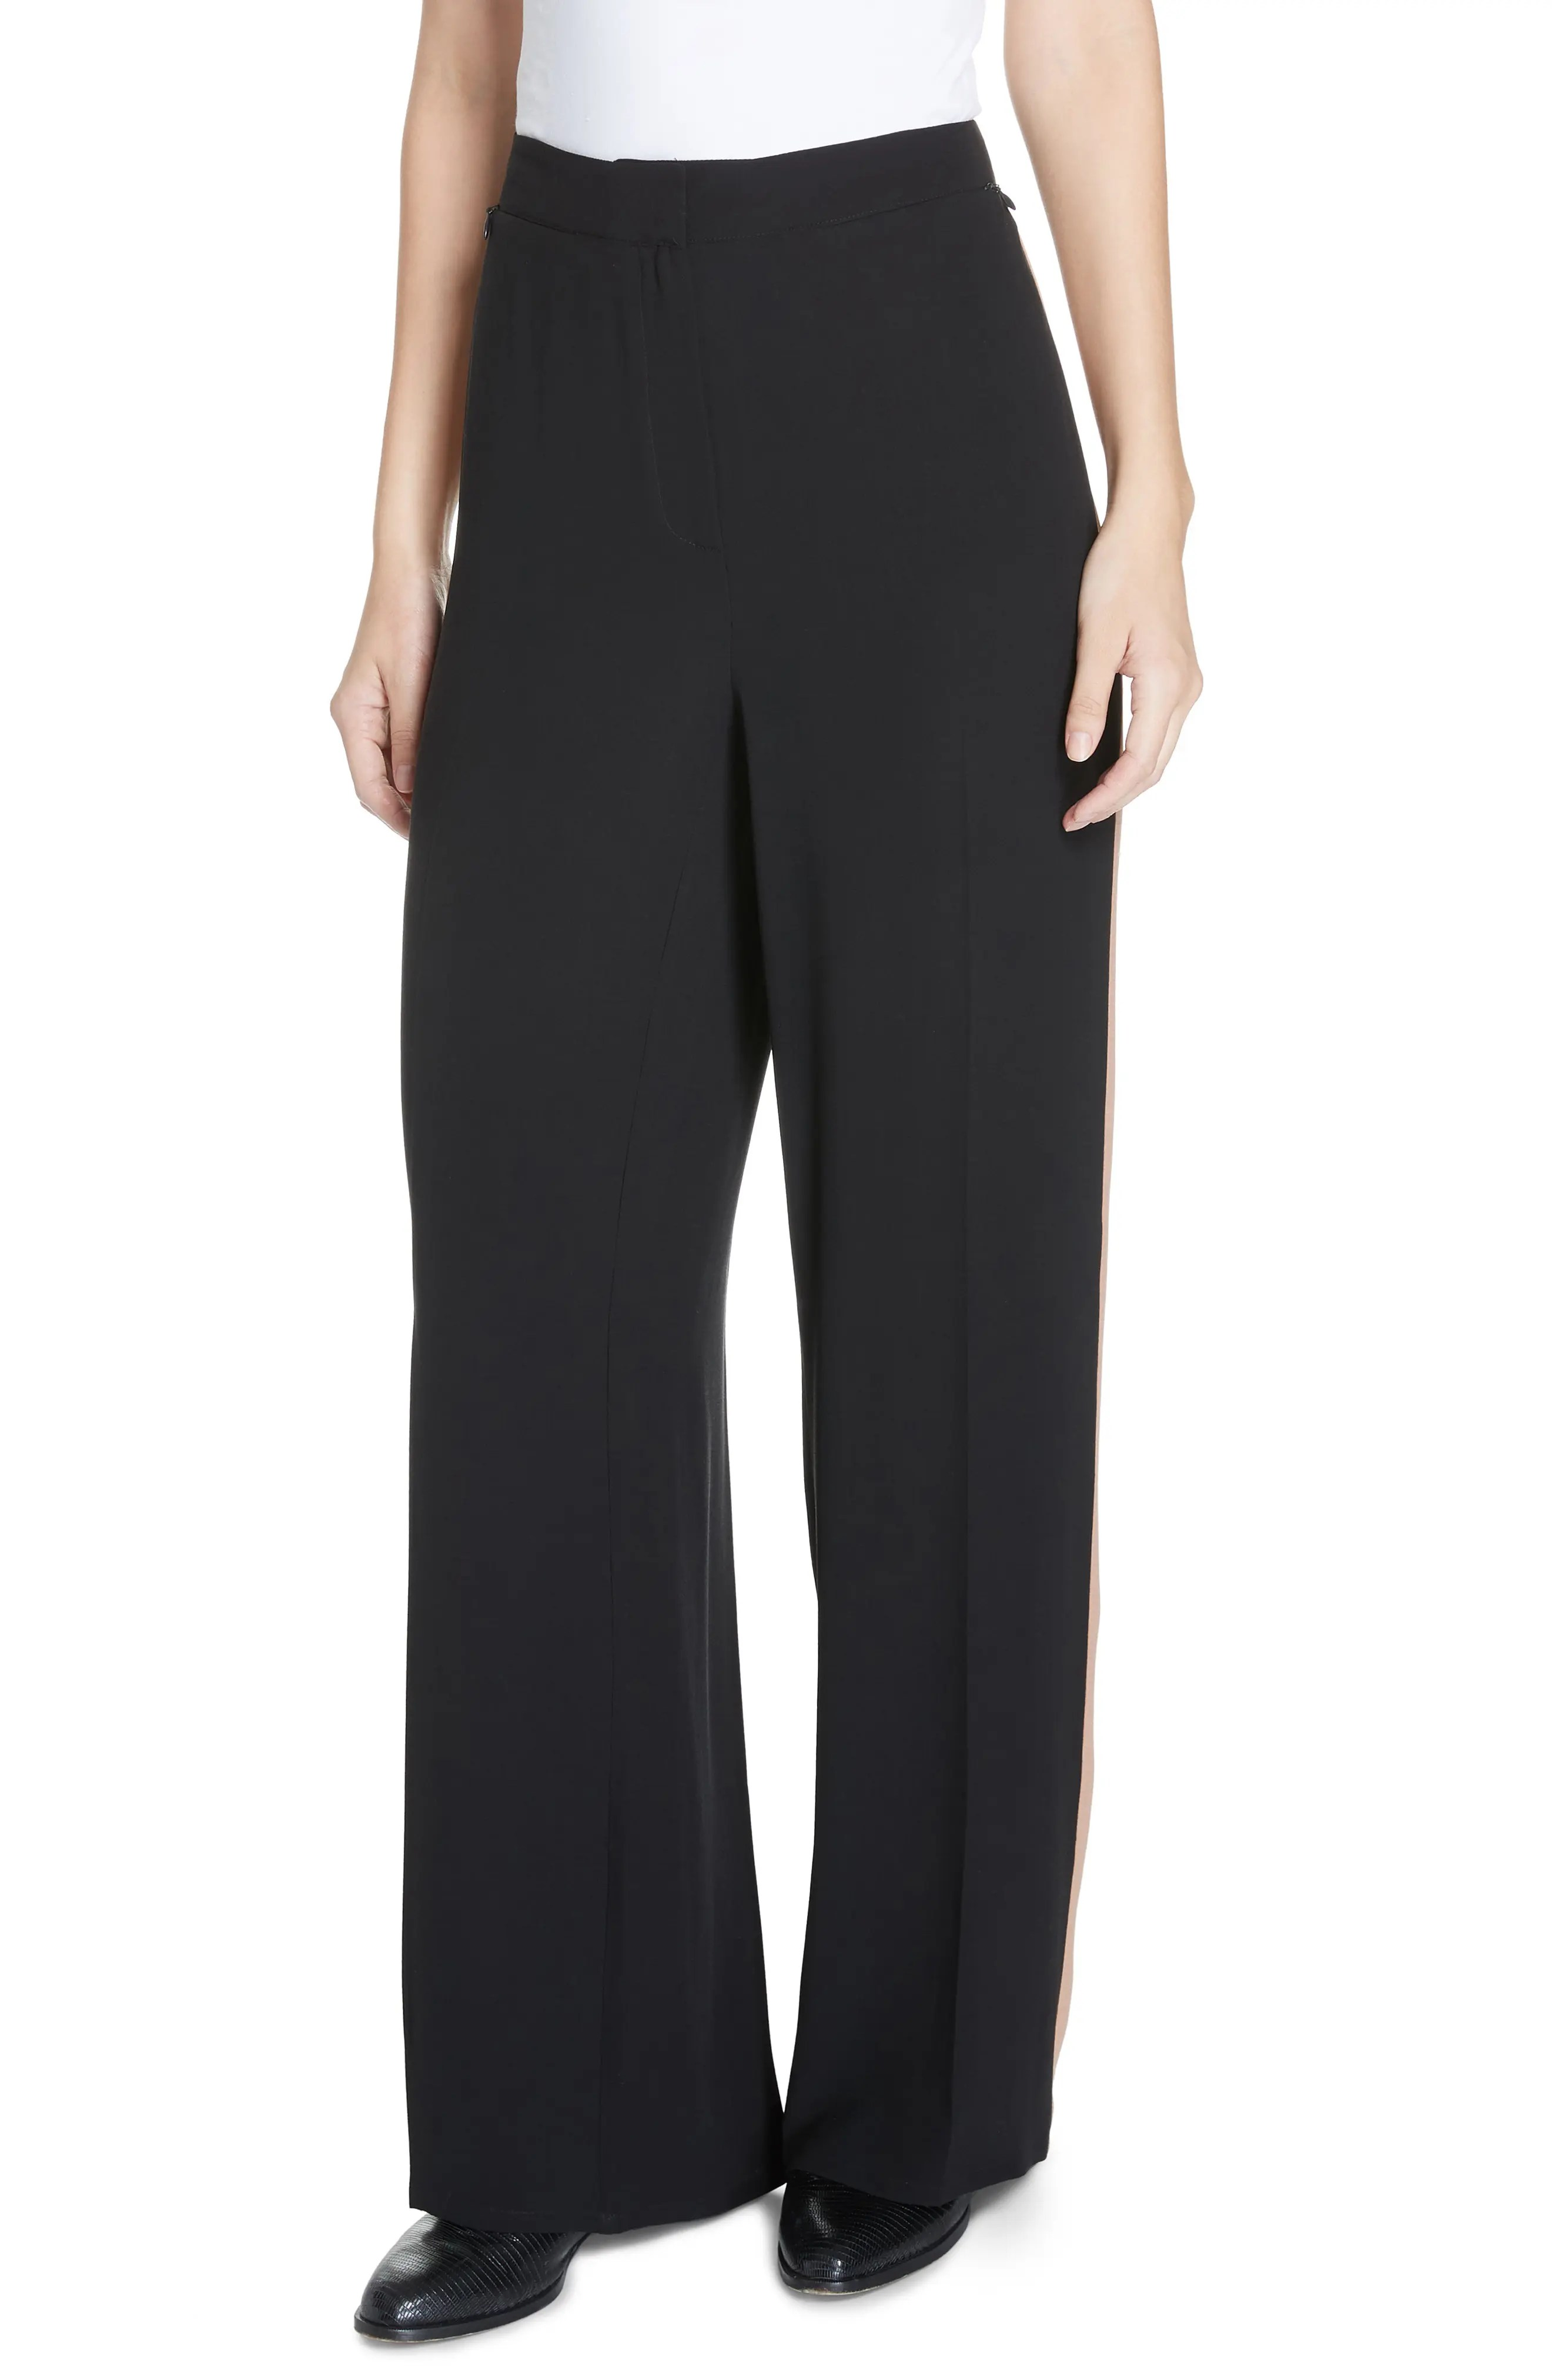 Eileen fisher high waist side stripe silk crepe pants regular  plus size also women  petite clothing nordstrom rh shoprdstrom